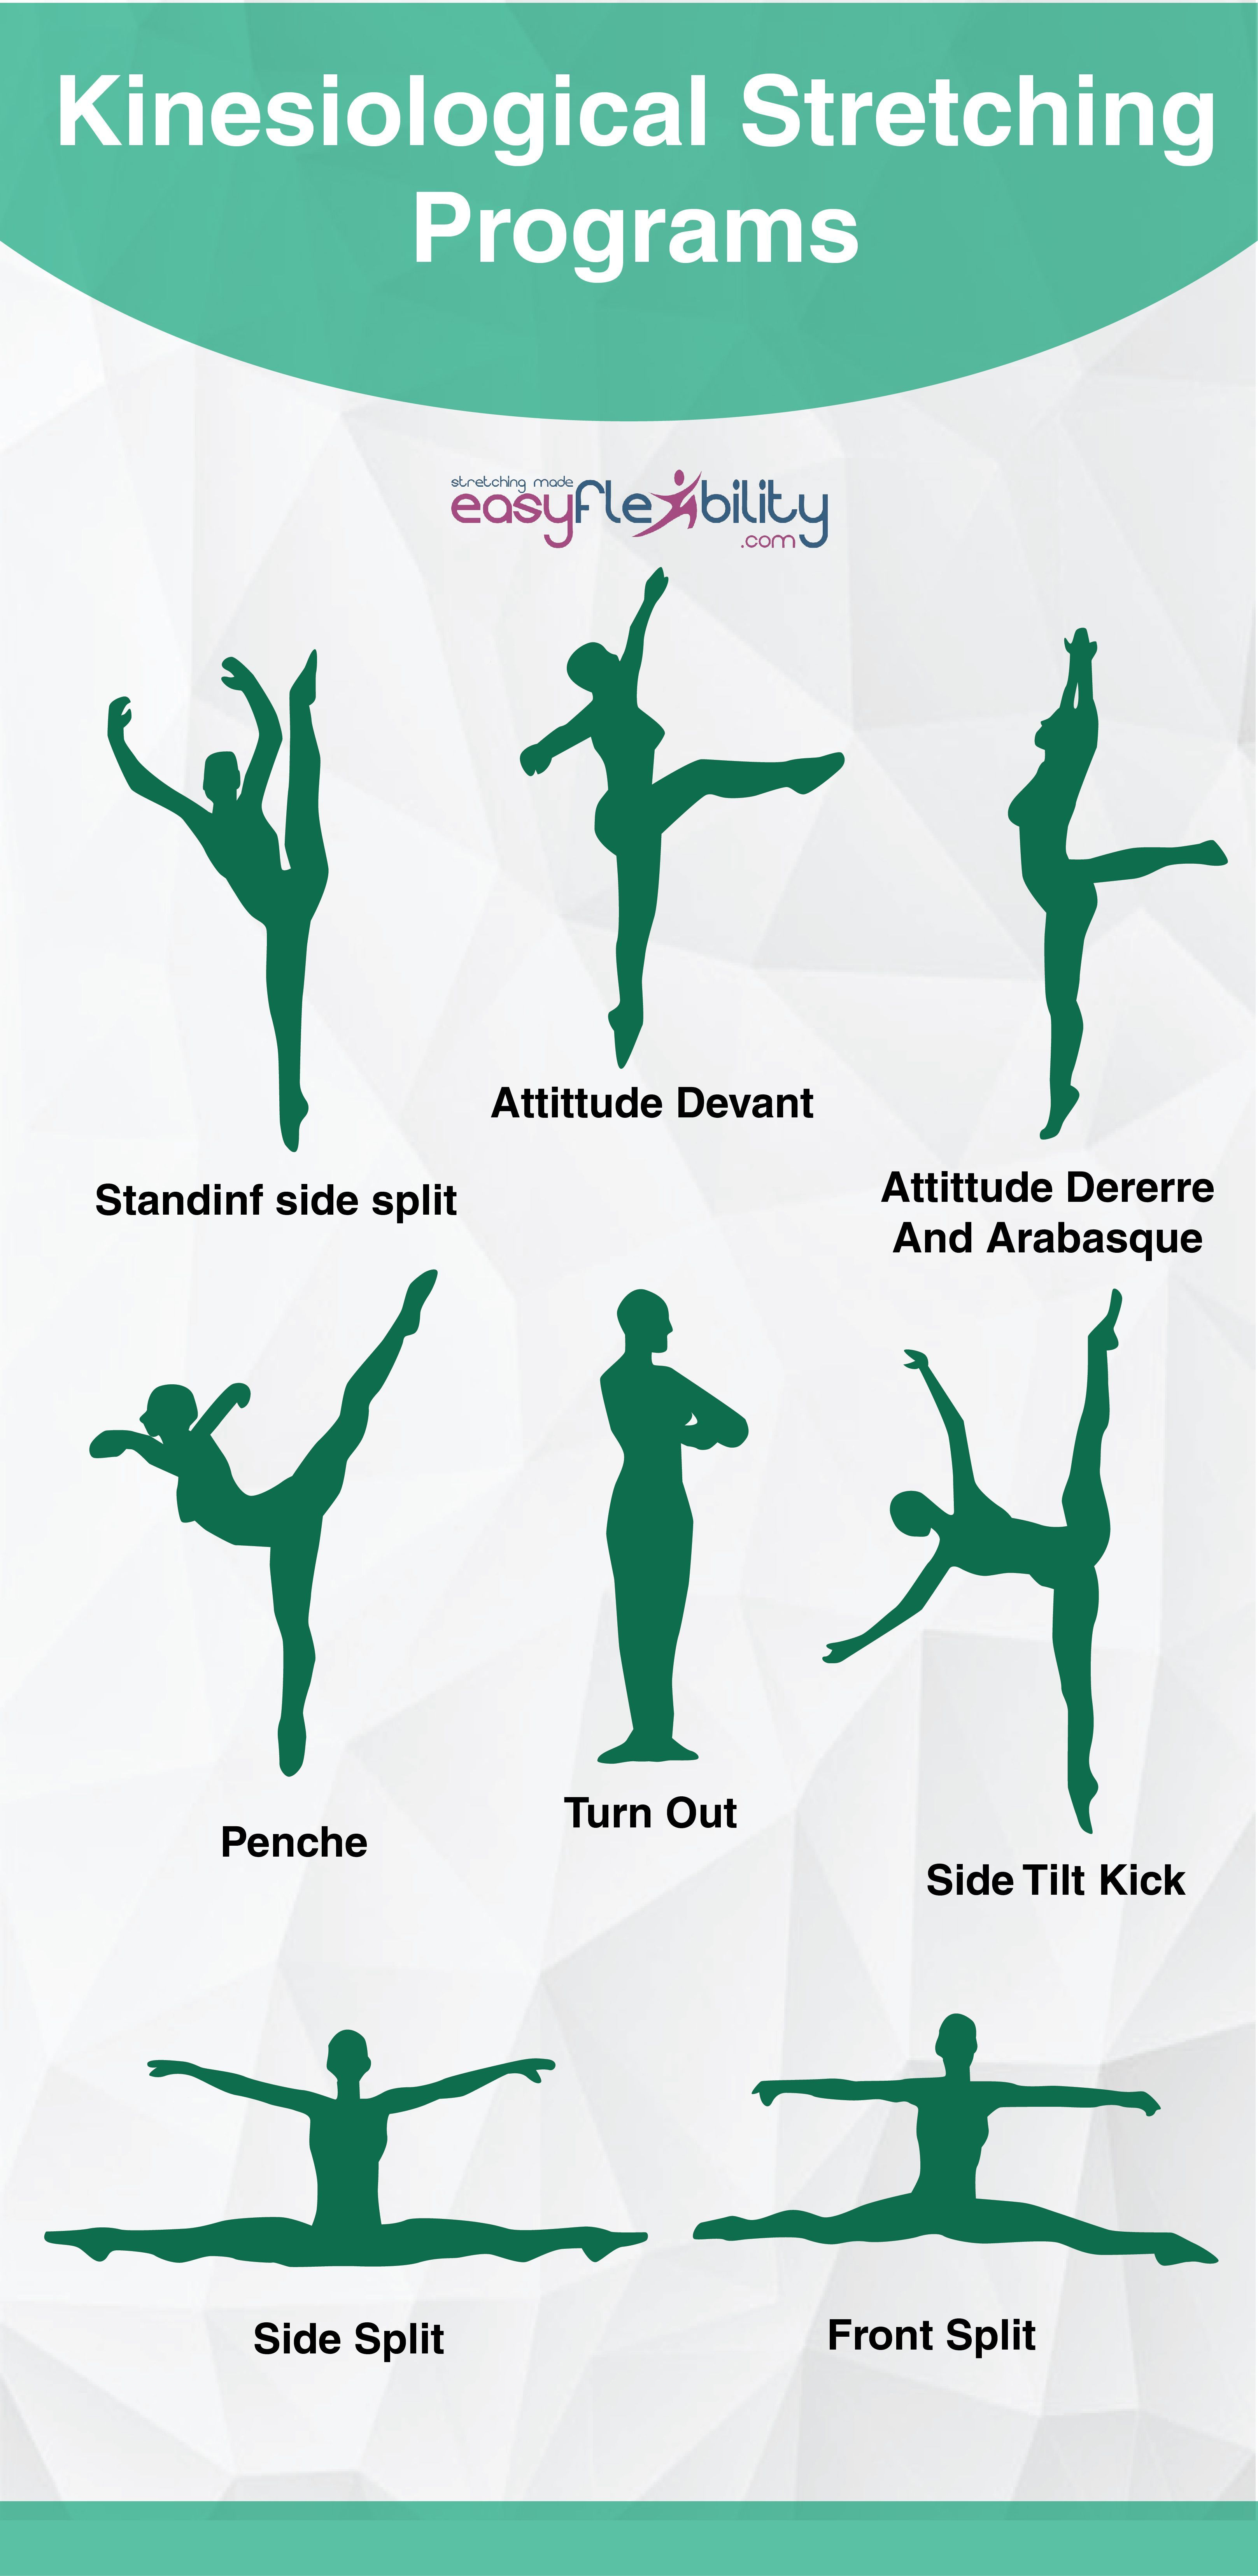 28+ Stretch and flex program poster ideas in 2021